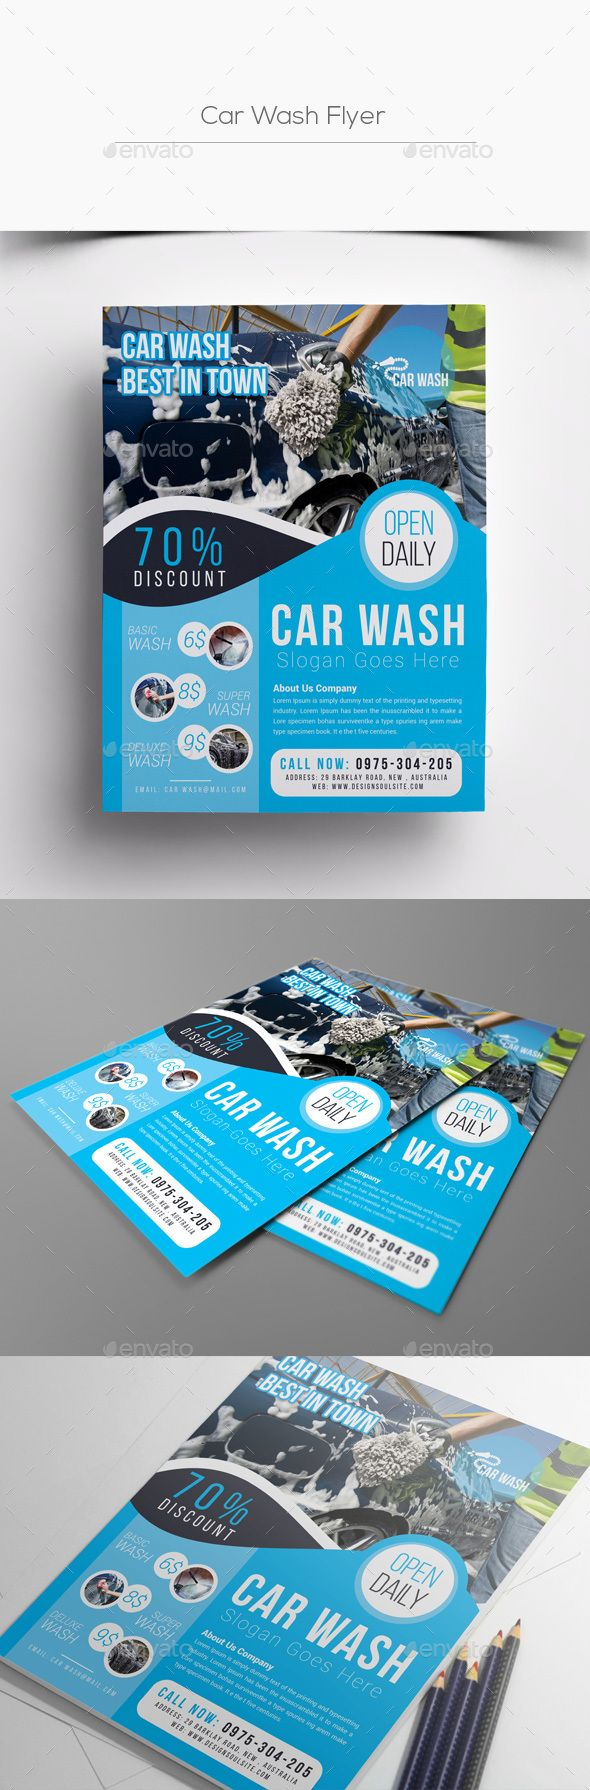 Car Wash Flyer Templates Corporate Flyers Auto Graphic Design